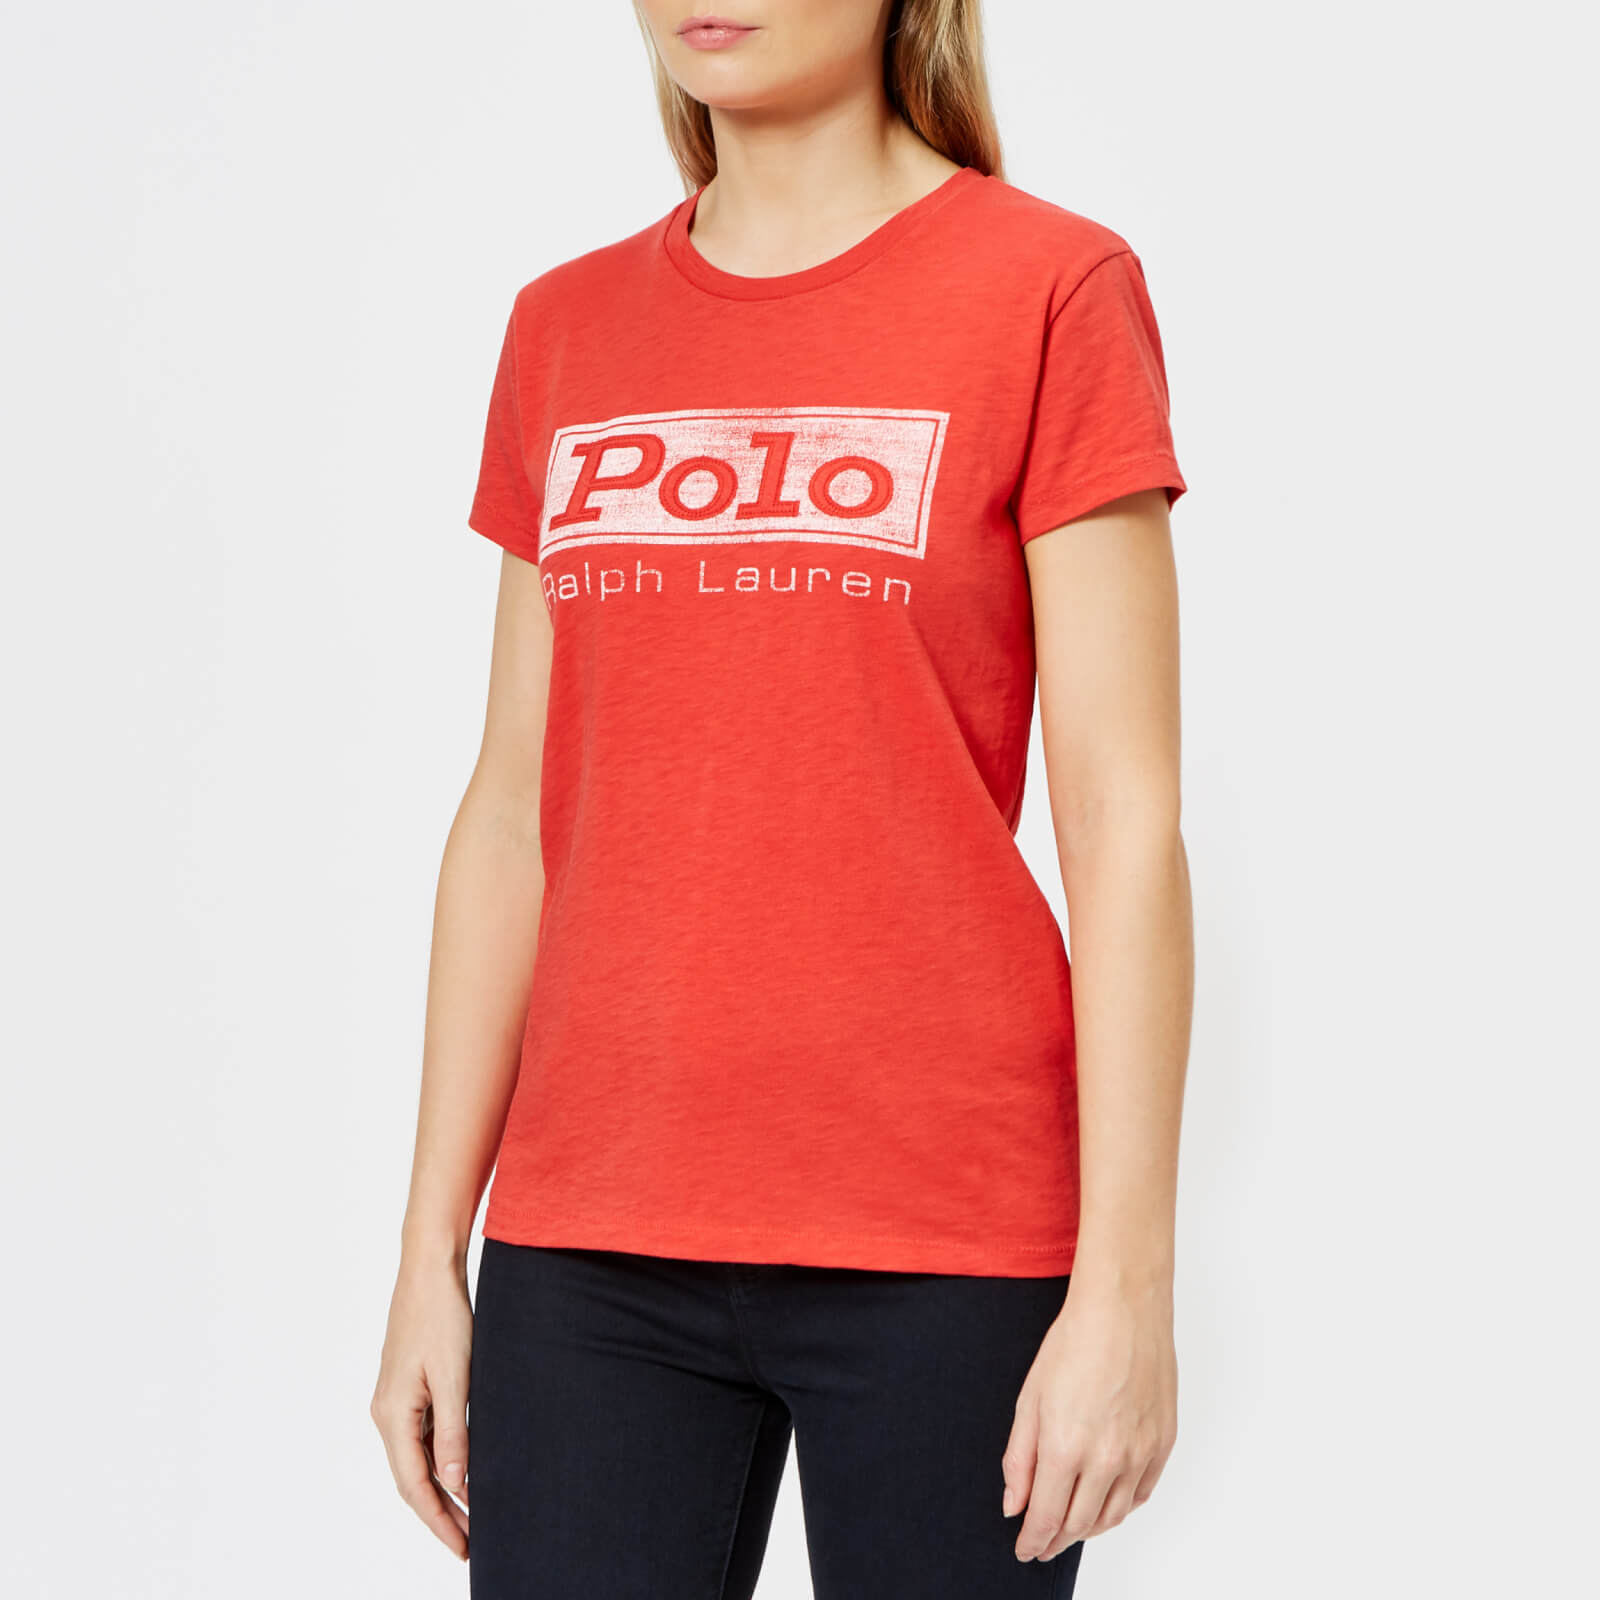 c33357fc88e Polo Ralph Lauren Women s Polo Logo T-Shirt - Red - Free UK Delivery over  £50